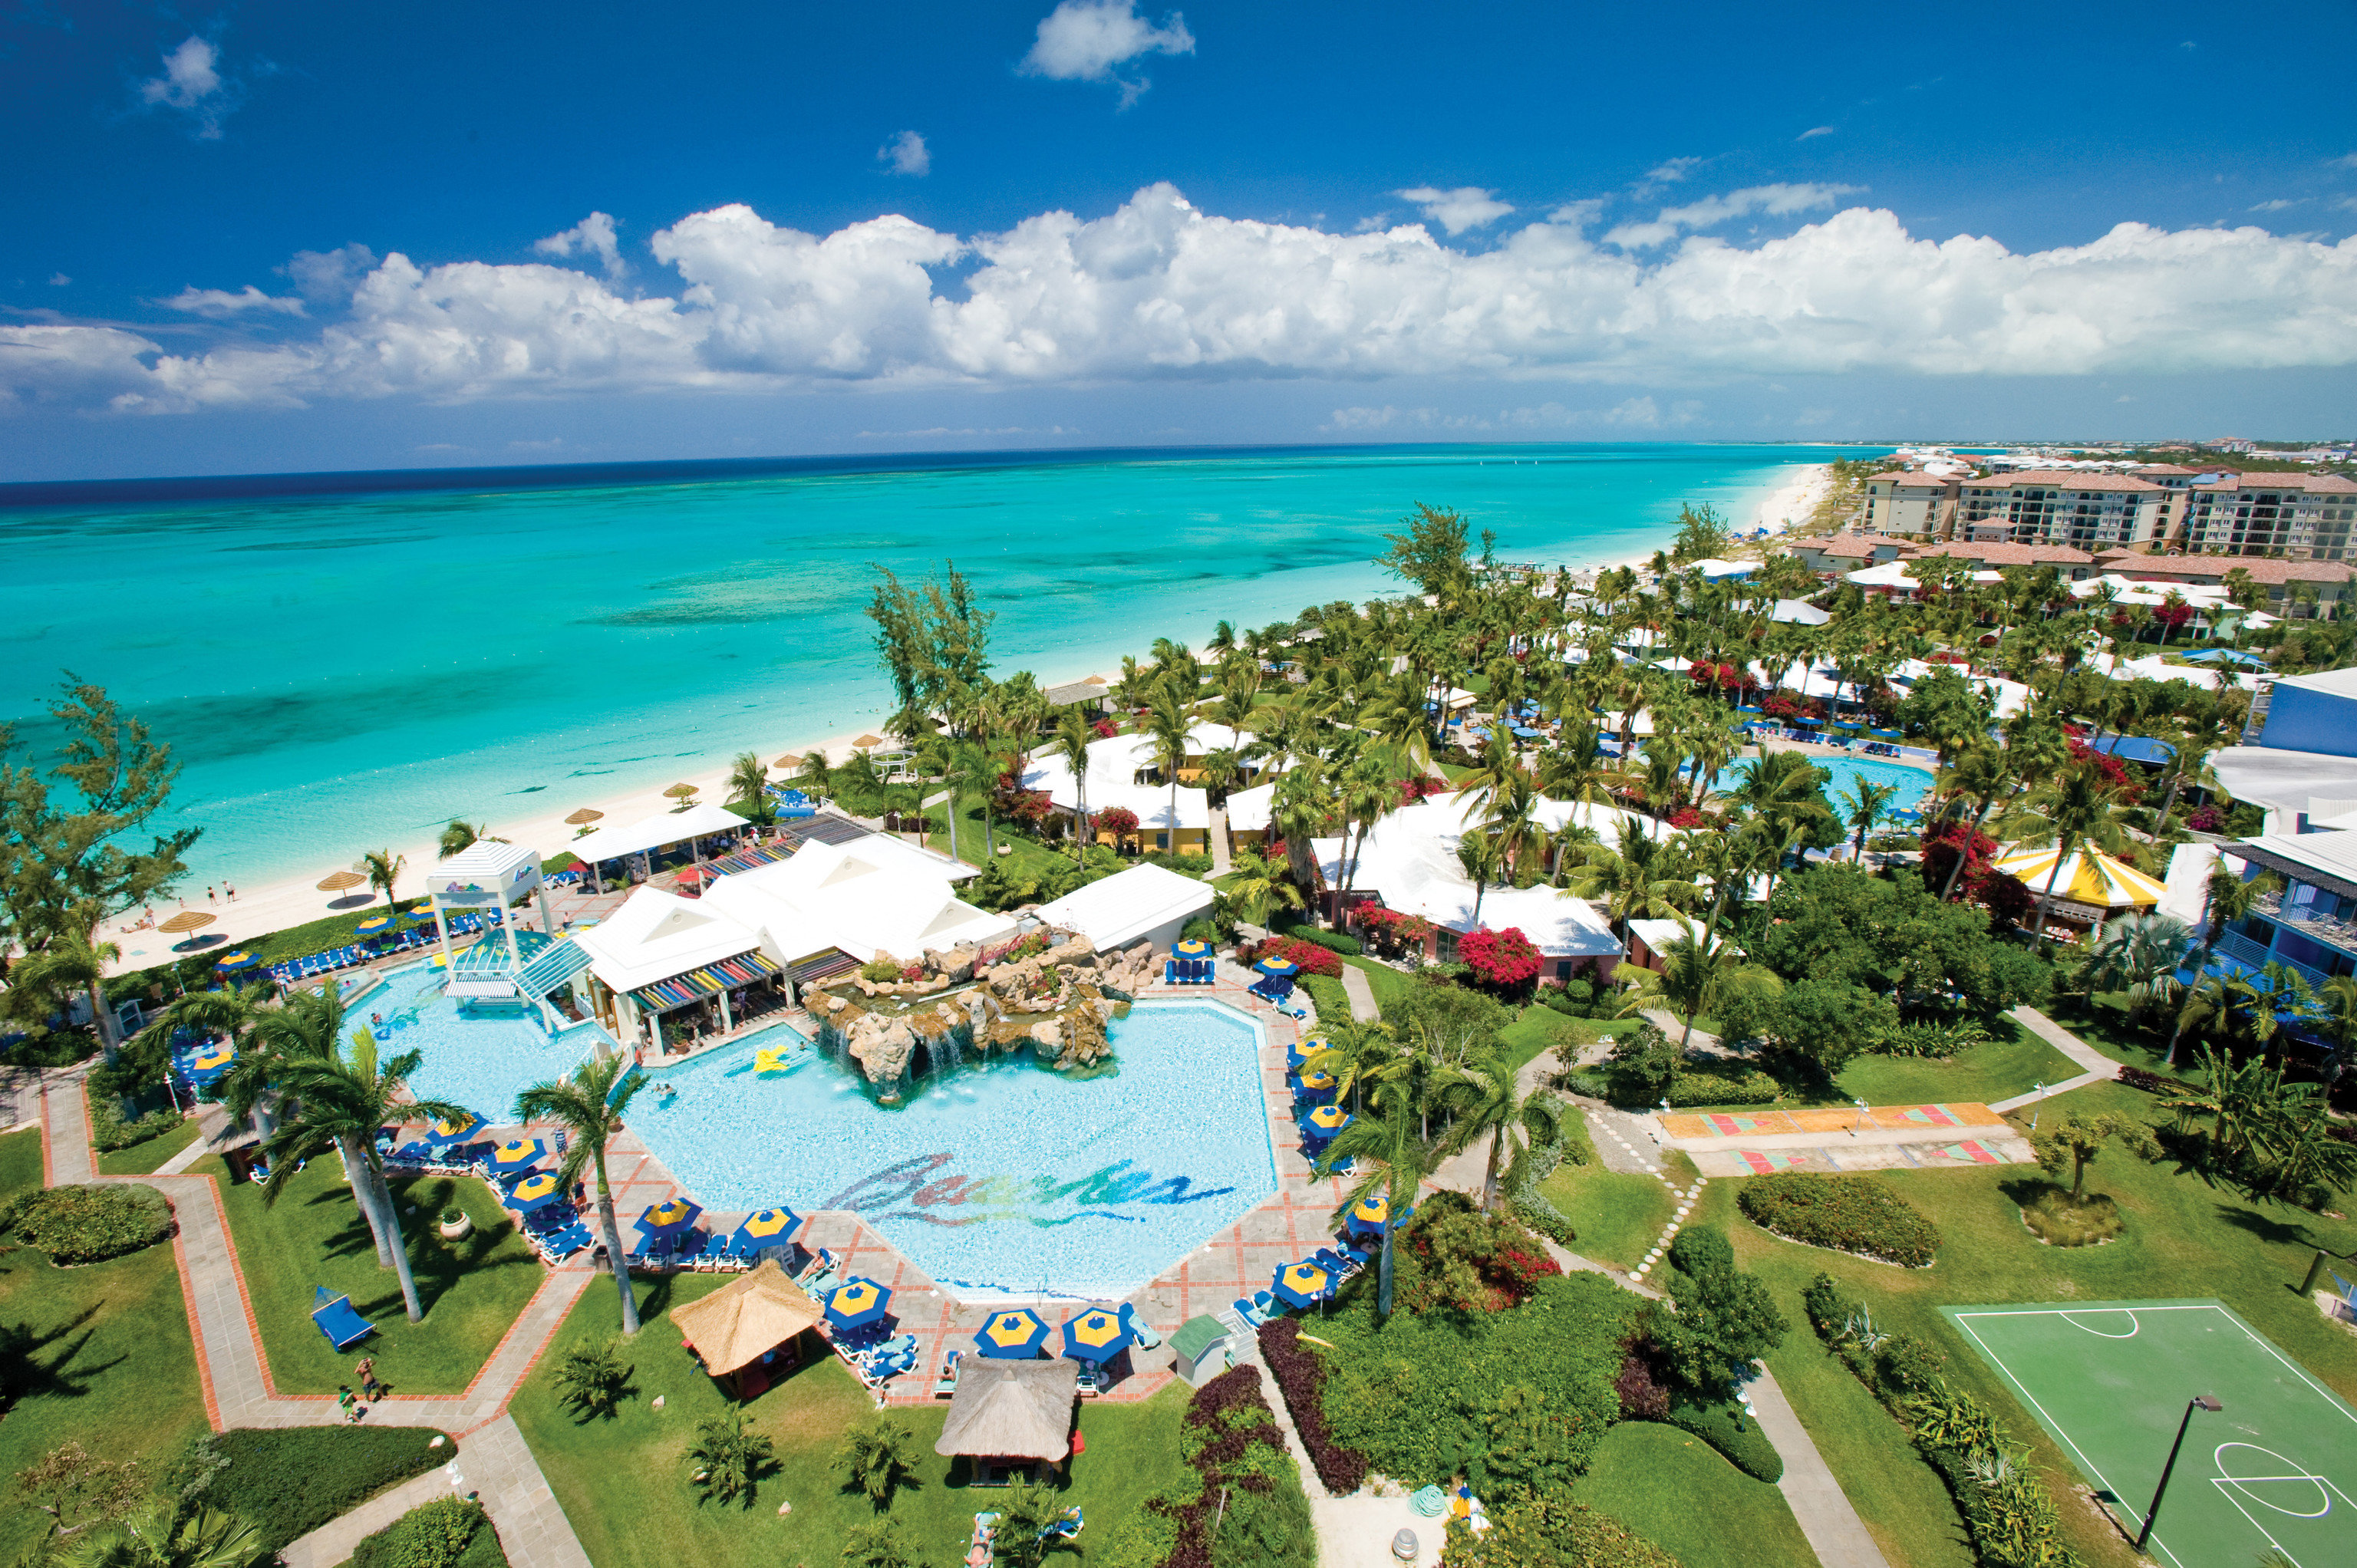 All-Inclusive Resorts Family Travel Hotels Resort resort town leisure tourism caribbean tropics vacation swimming pool aerial photography bay palm tree real estate sky arecales bird's eye view Coast estate Sea Lagoon